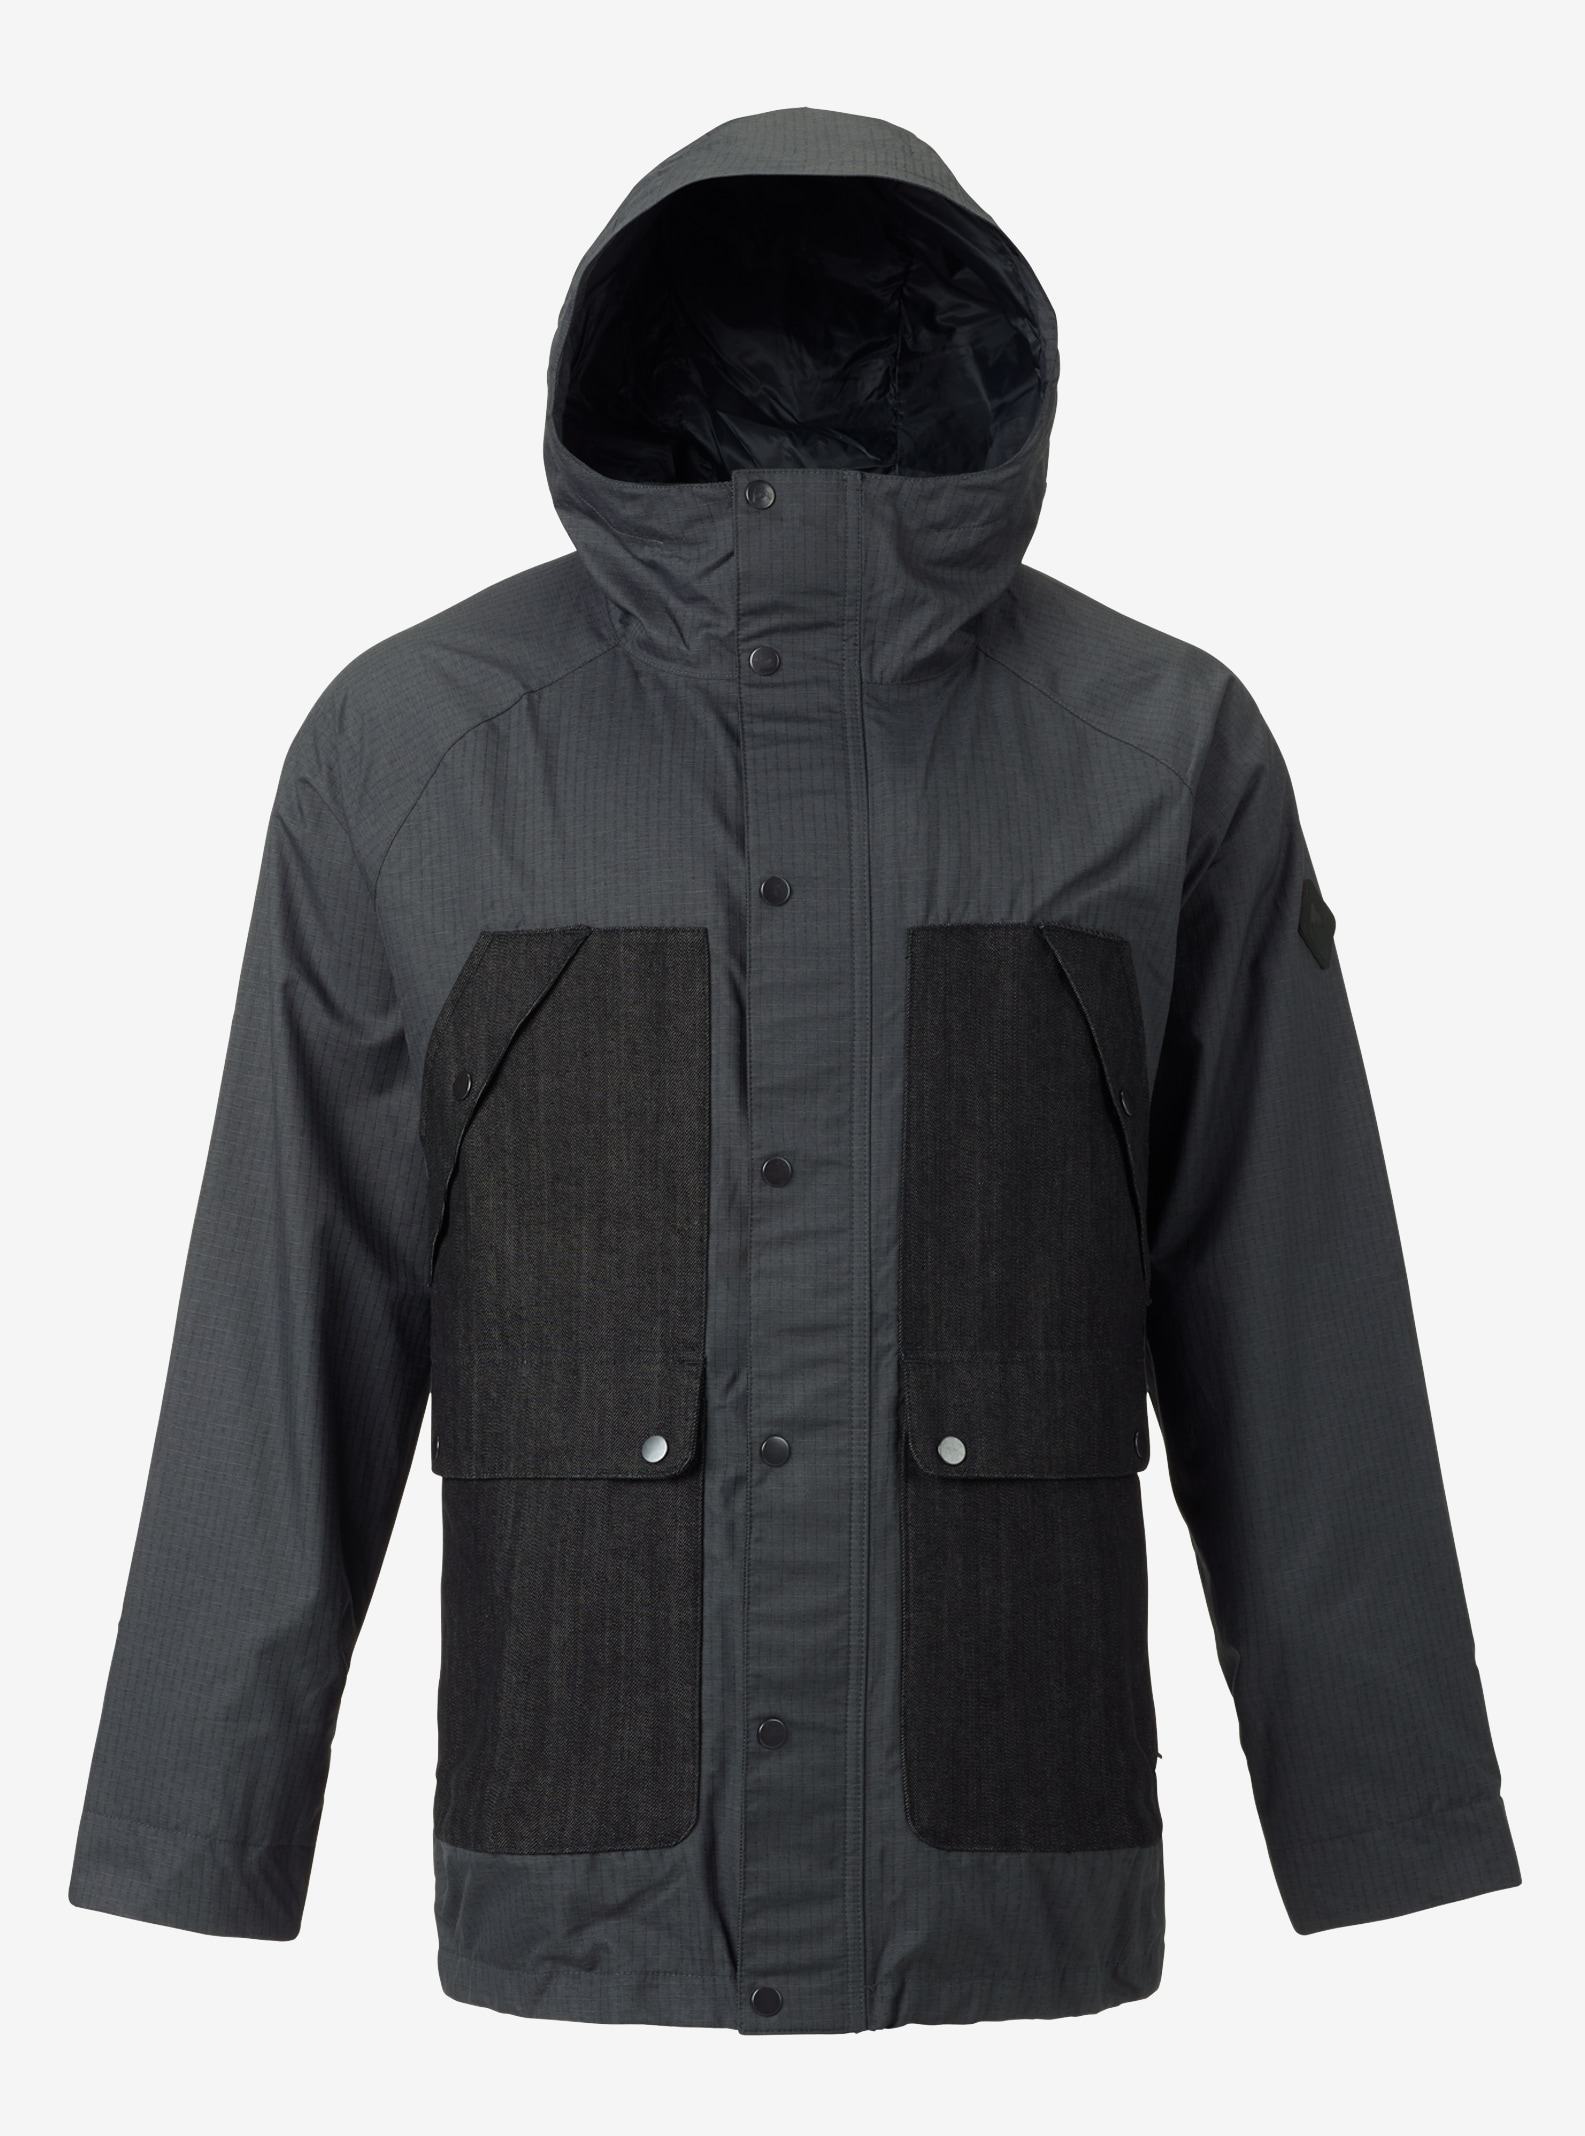 Men's Burton Bellringer Jacket shown in Faded / Denim